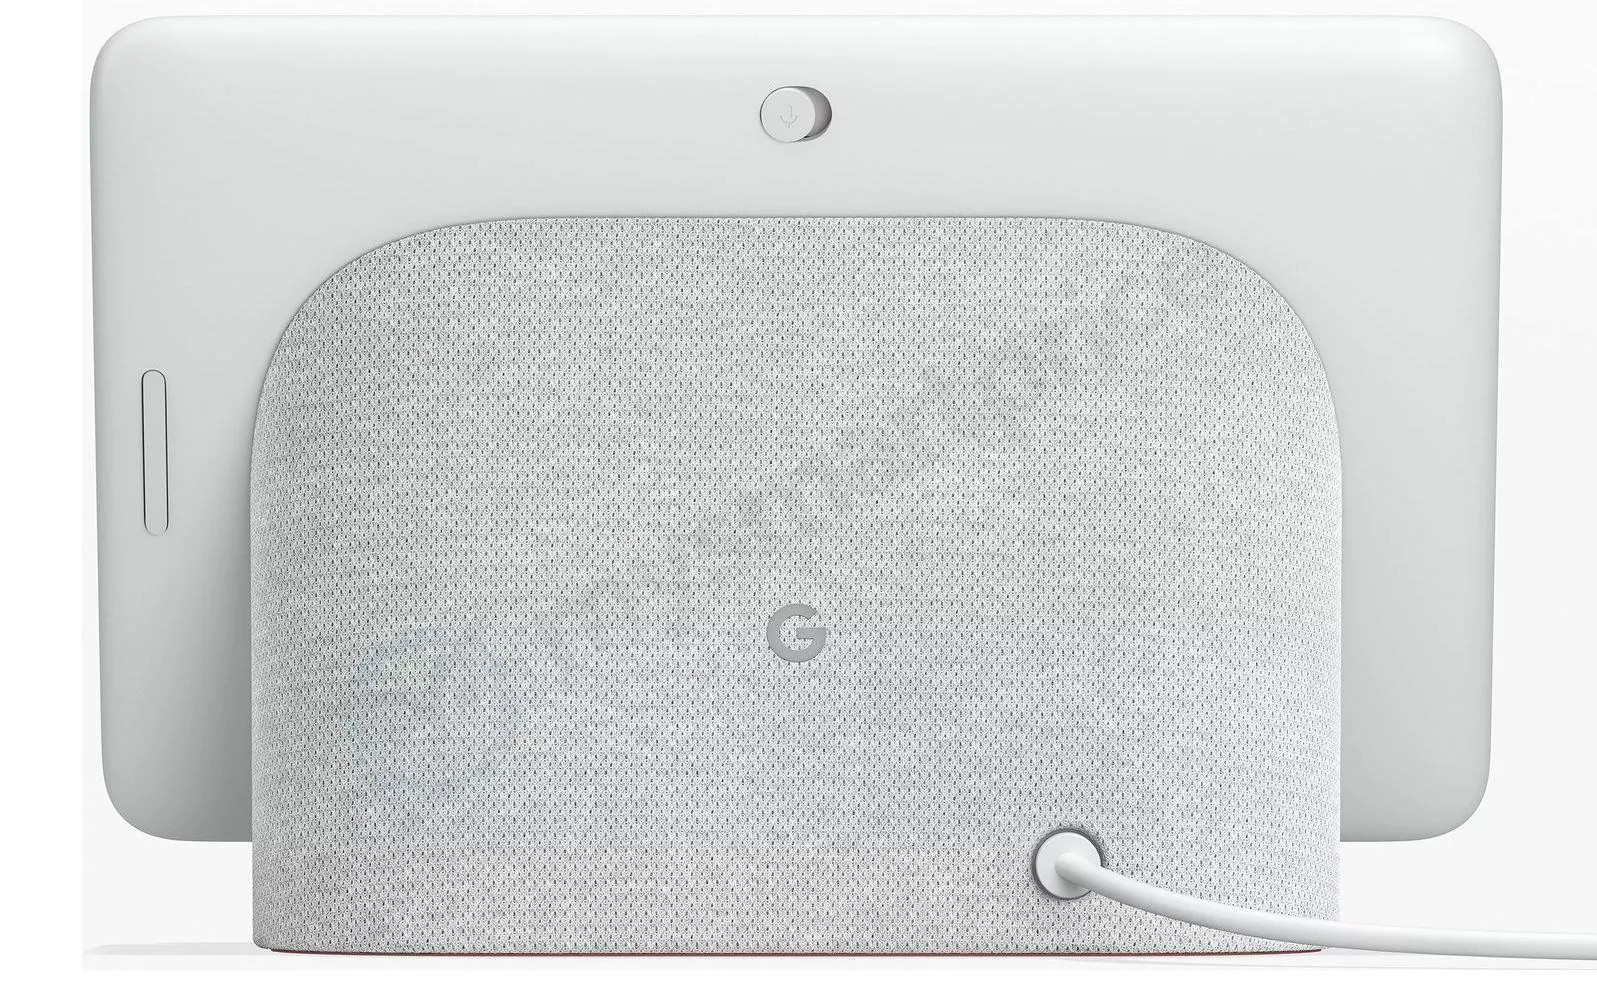 This Could be our First Look at the Google Home Hub